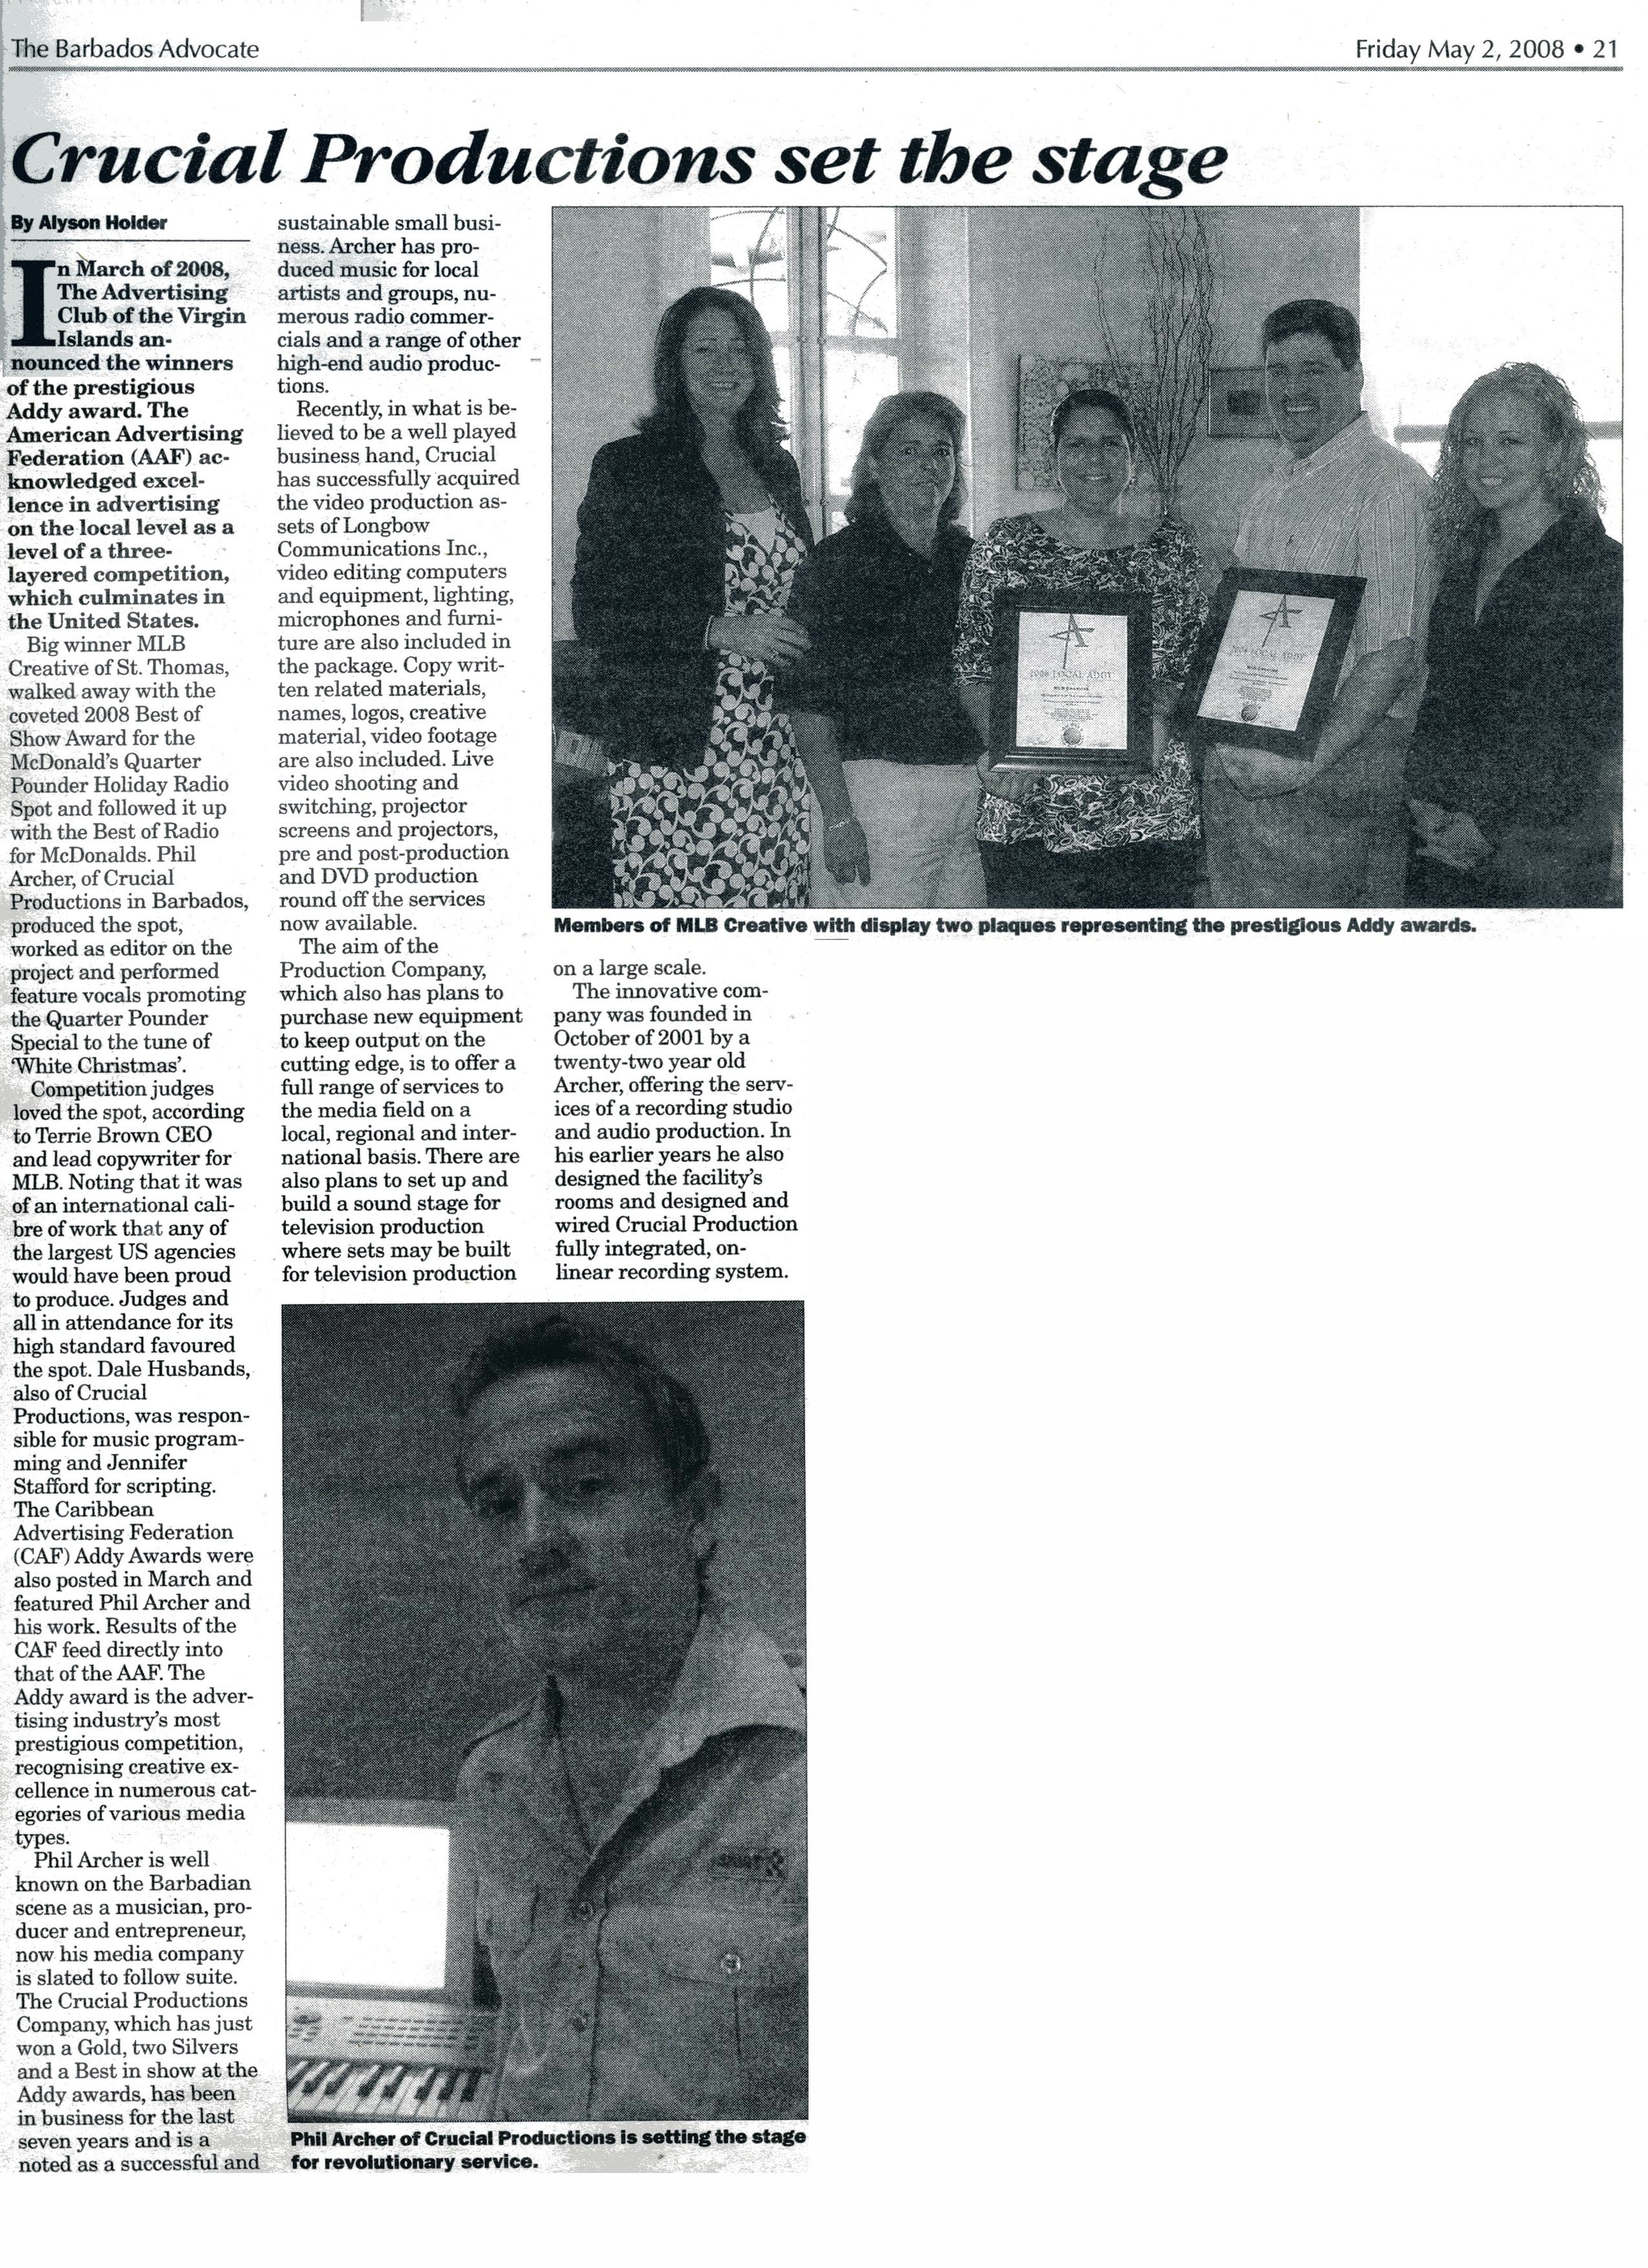 Barbados Advocate Article Addy Awards.jpg